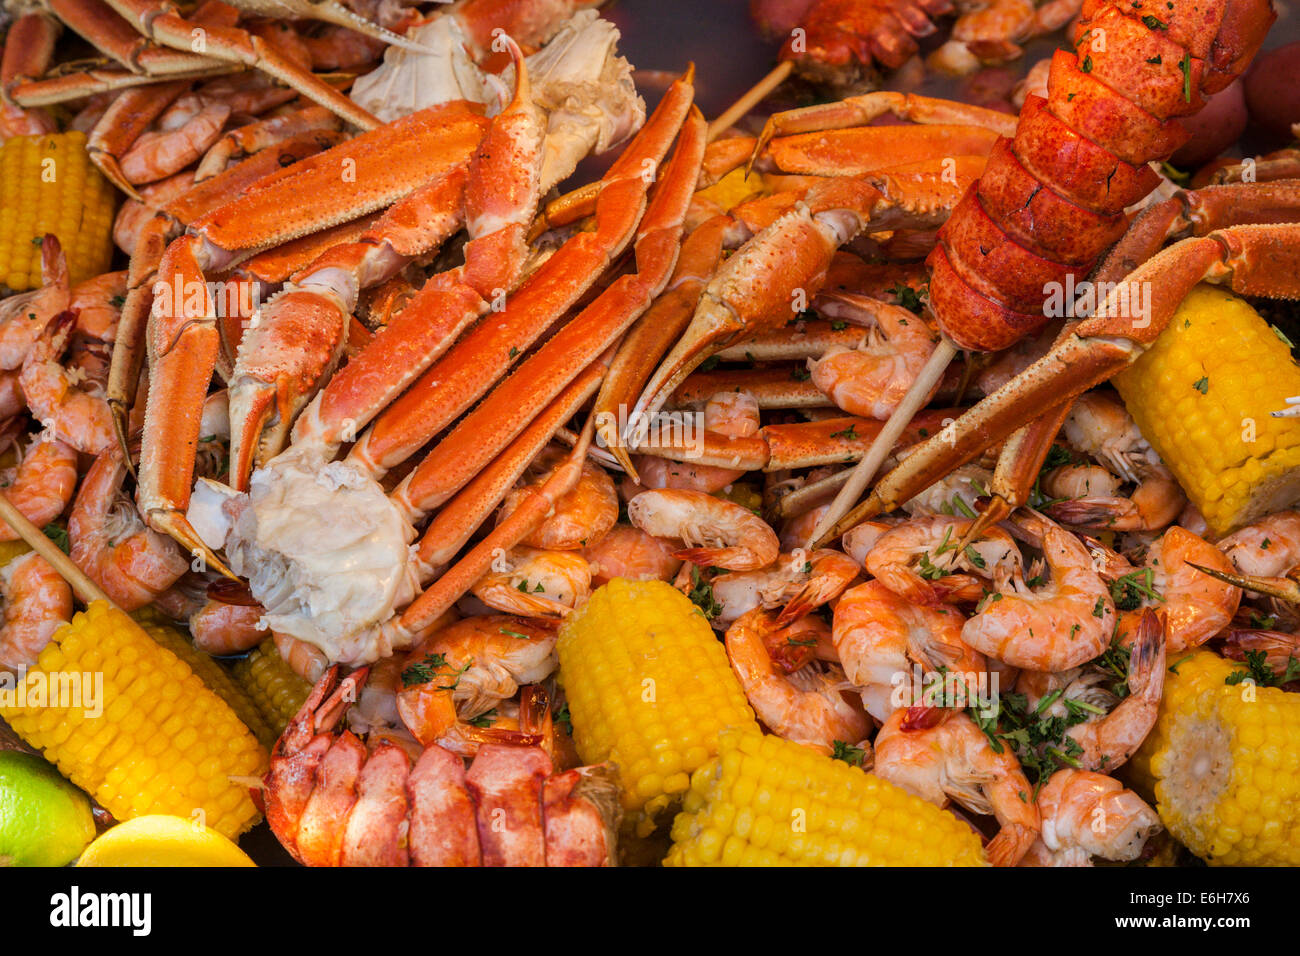 Cajun seafood low country boil with corn, shrimp and crab legs Stock Photo: 72908814 - Alamy